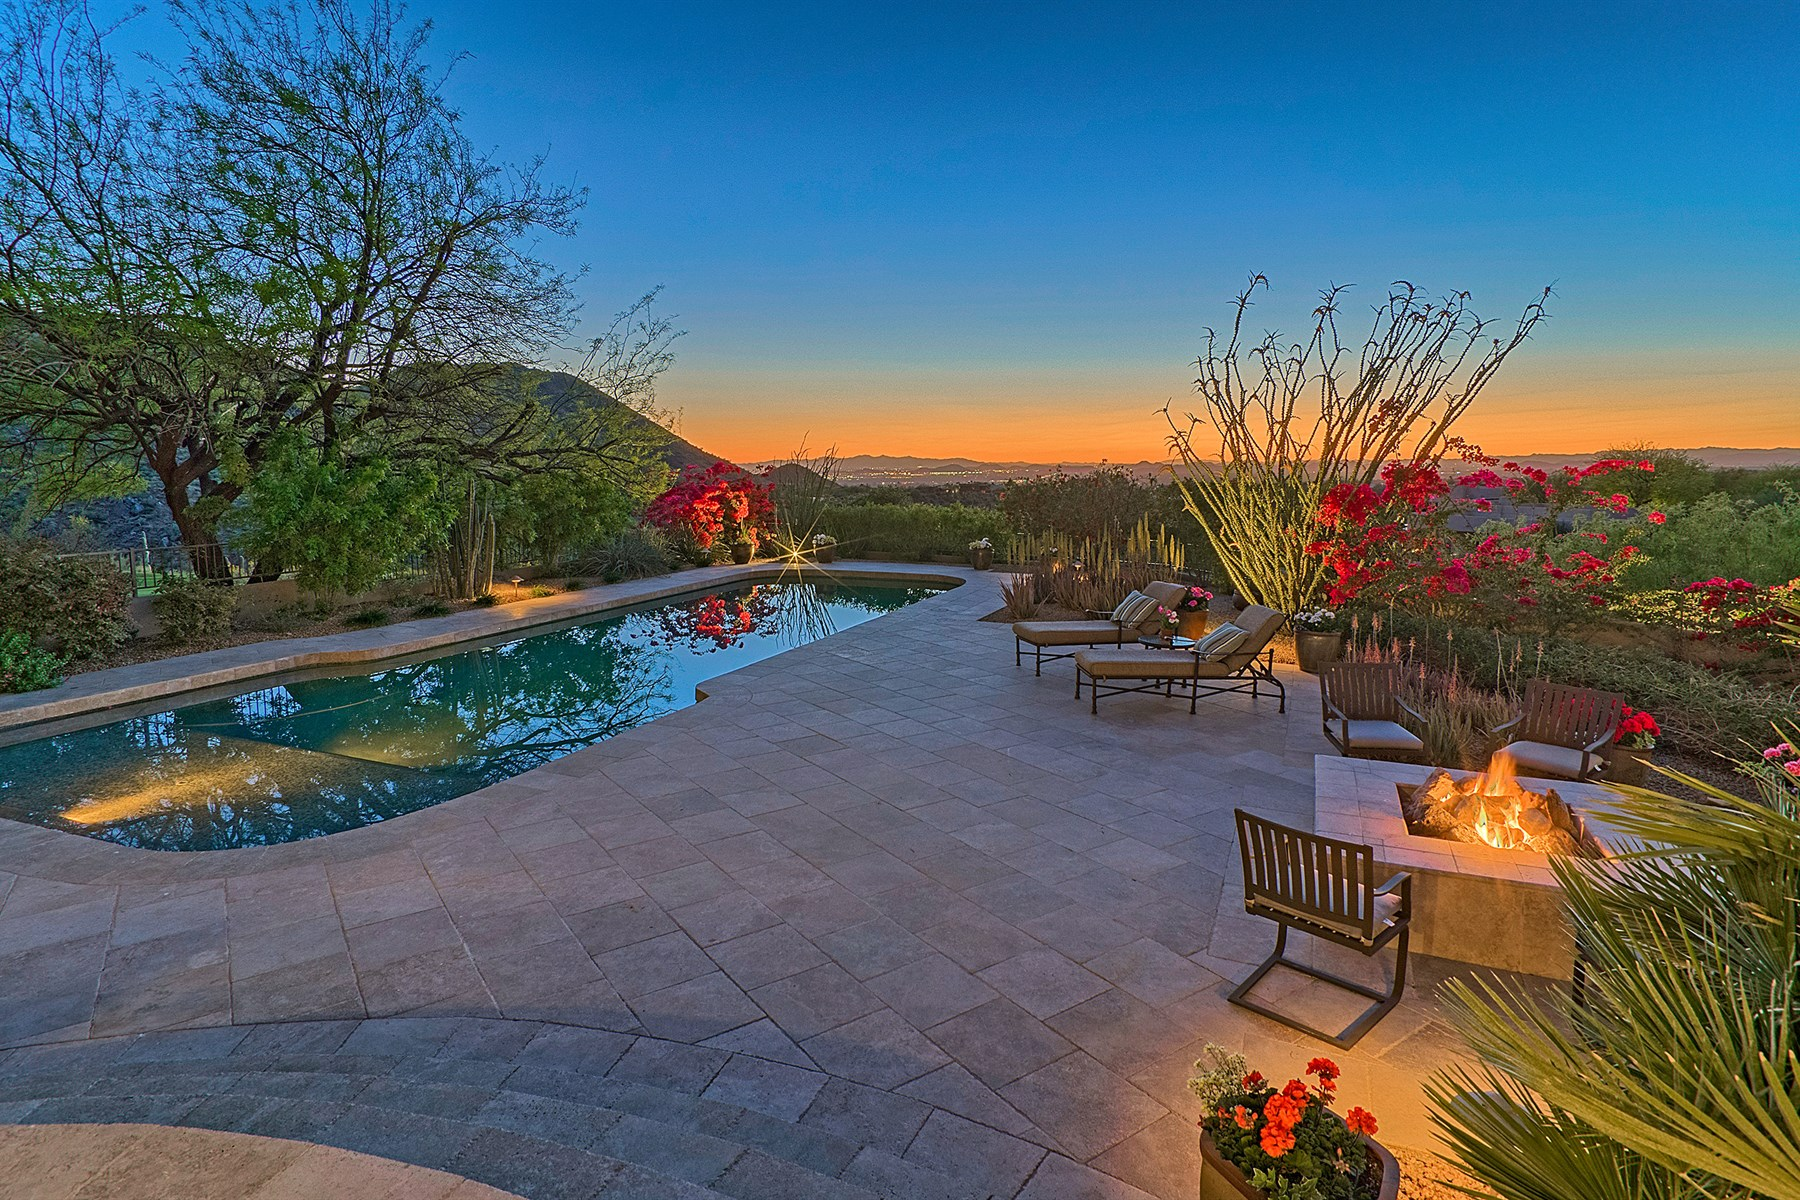 Single Family Home for Sale at Timeless territorial with endless views 10801 E Happy Valley Rd #124 Scottsdale, Arizona, 85255 United States